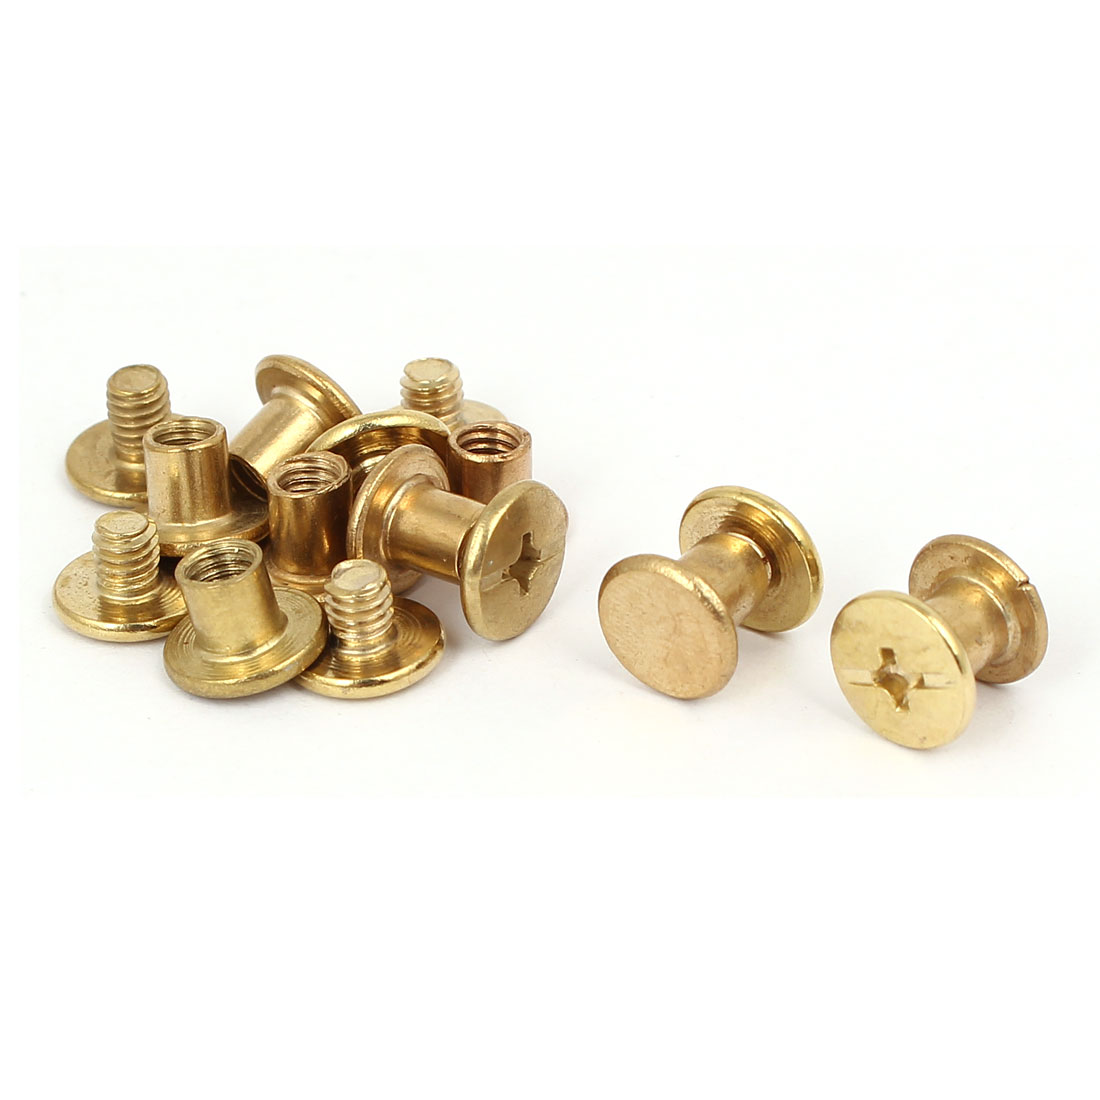 Photo Album Metal Brass Plated Binding Screw Post Barrel Nut M5x6mm 8pcs